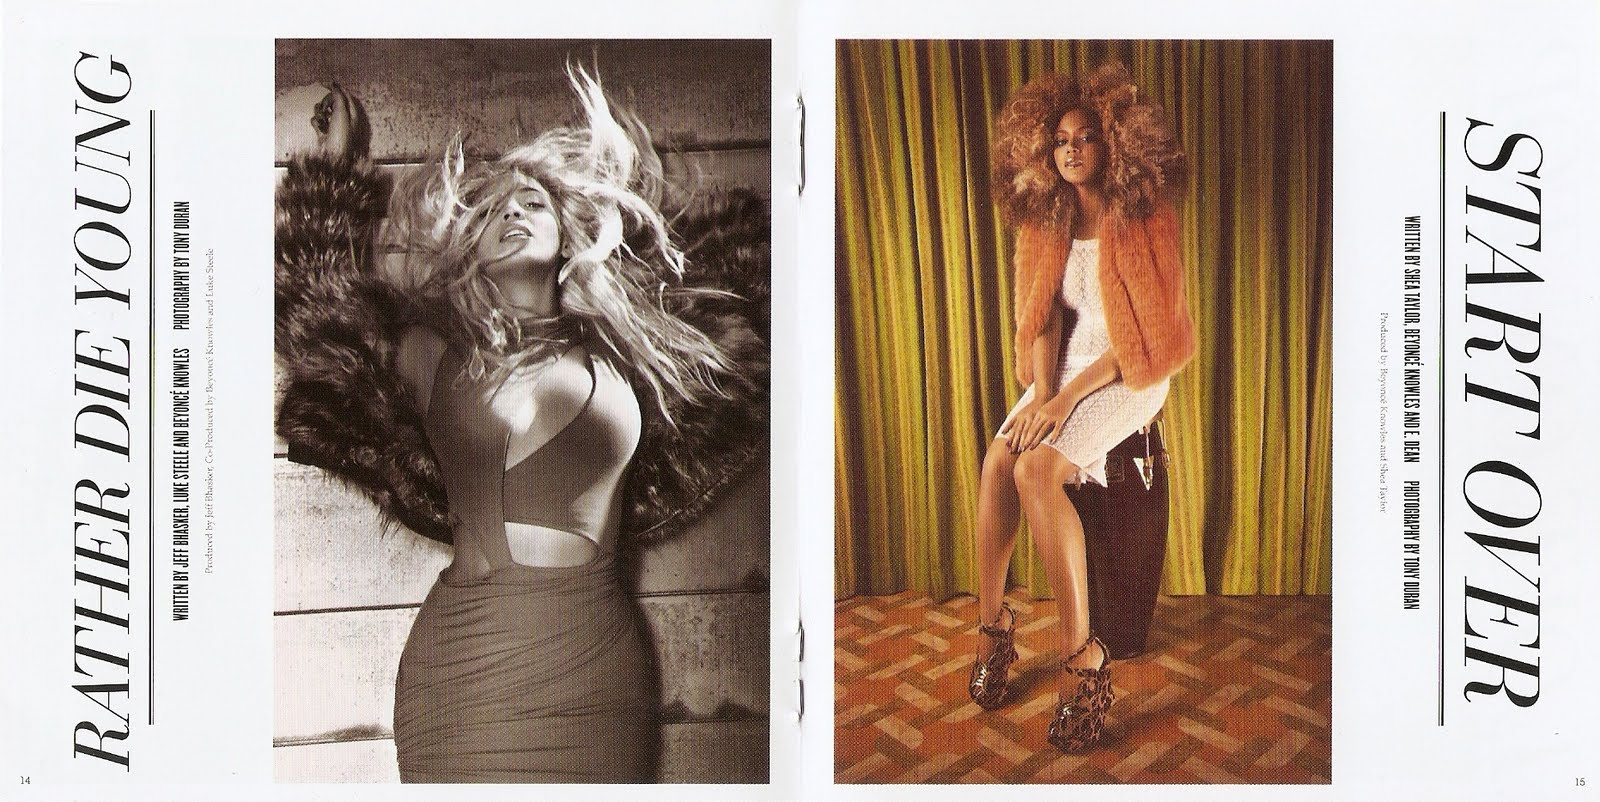 http://1.bp.blogspot.com/-AGYrvCeLrF8/Tgs8rT5ottI/AAAAAAAABR4/ynaQPbHVRTw/s1600/Beyonce+4+Deluxe+Edition+Booklet+Pages+14+and+15.jpg